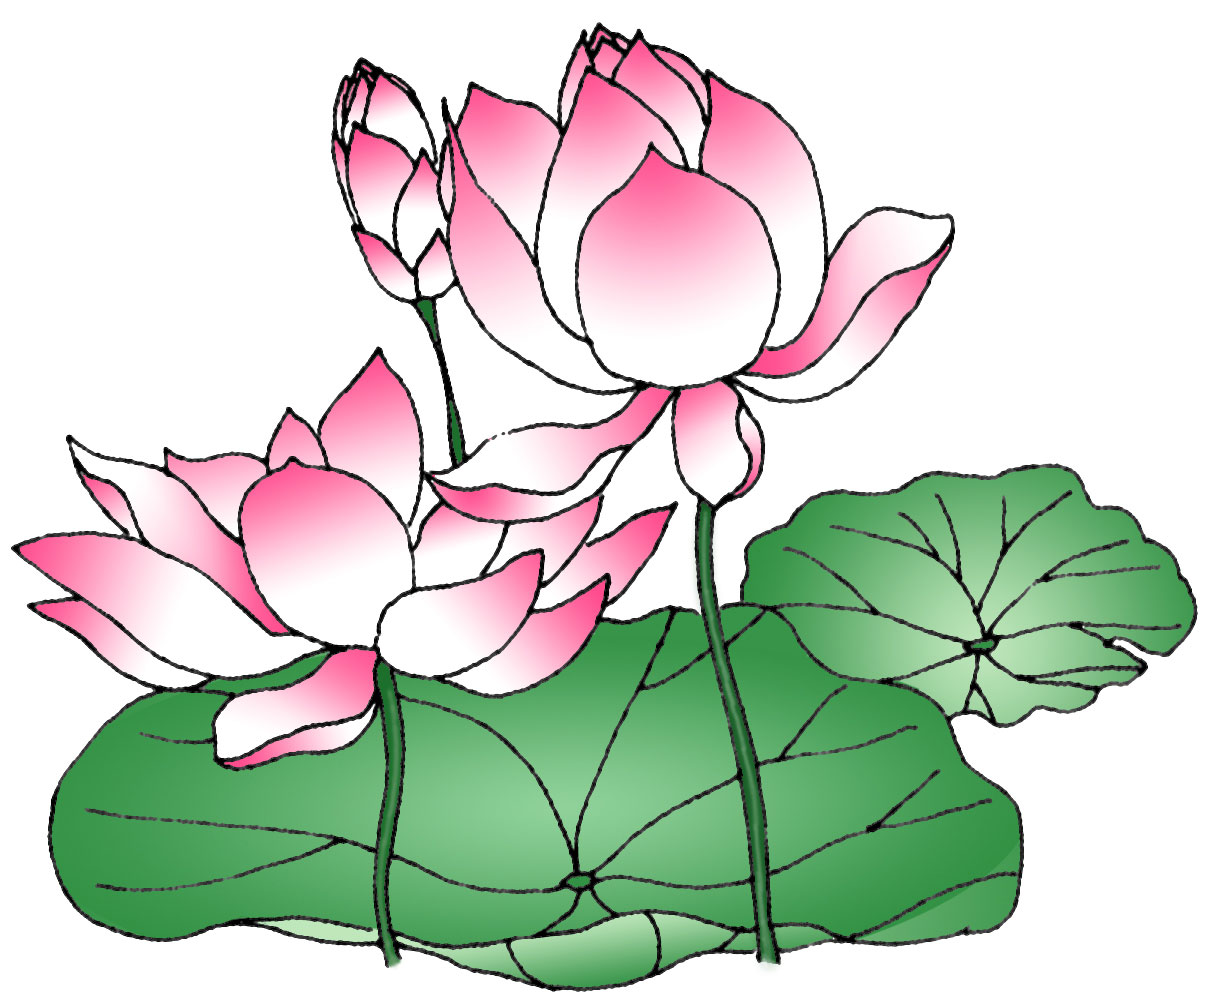 Lotus flower pencil drawing at getdrawings free for personal 1210x1004 sketch clipart lotus flower mightylinksfo